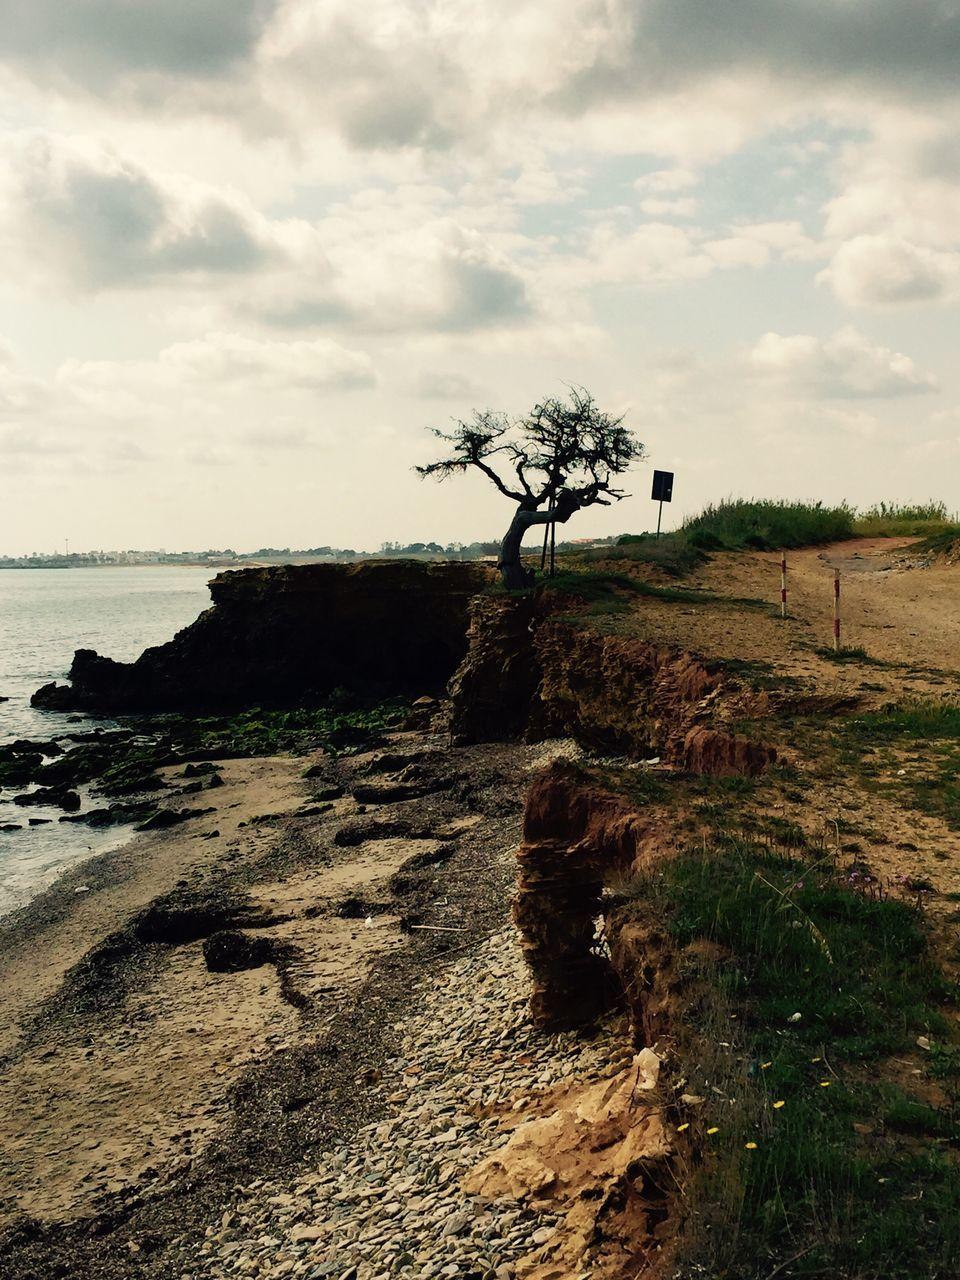 sky, tranquility, tree, cloud - sky, tranquil scene, nature, landscape, scenics, rock - object, outdoors, no people, day, lone, beauty in nature, sea, water